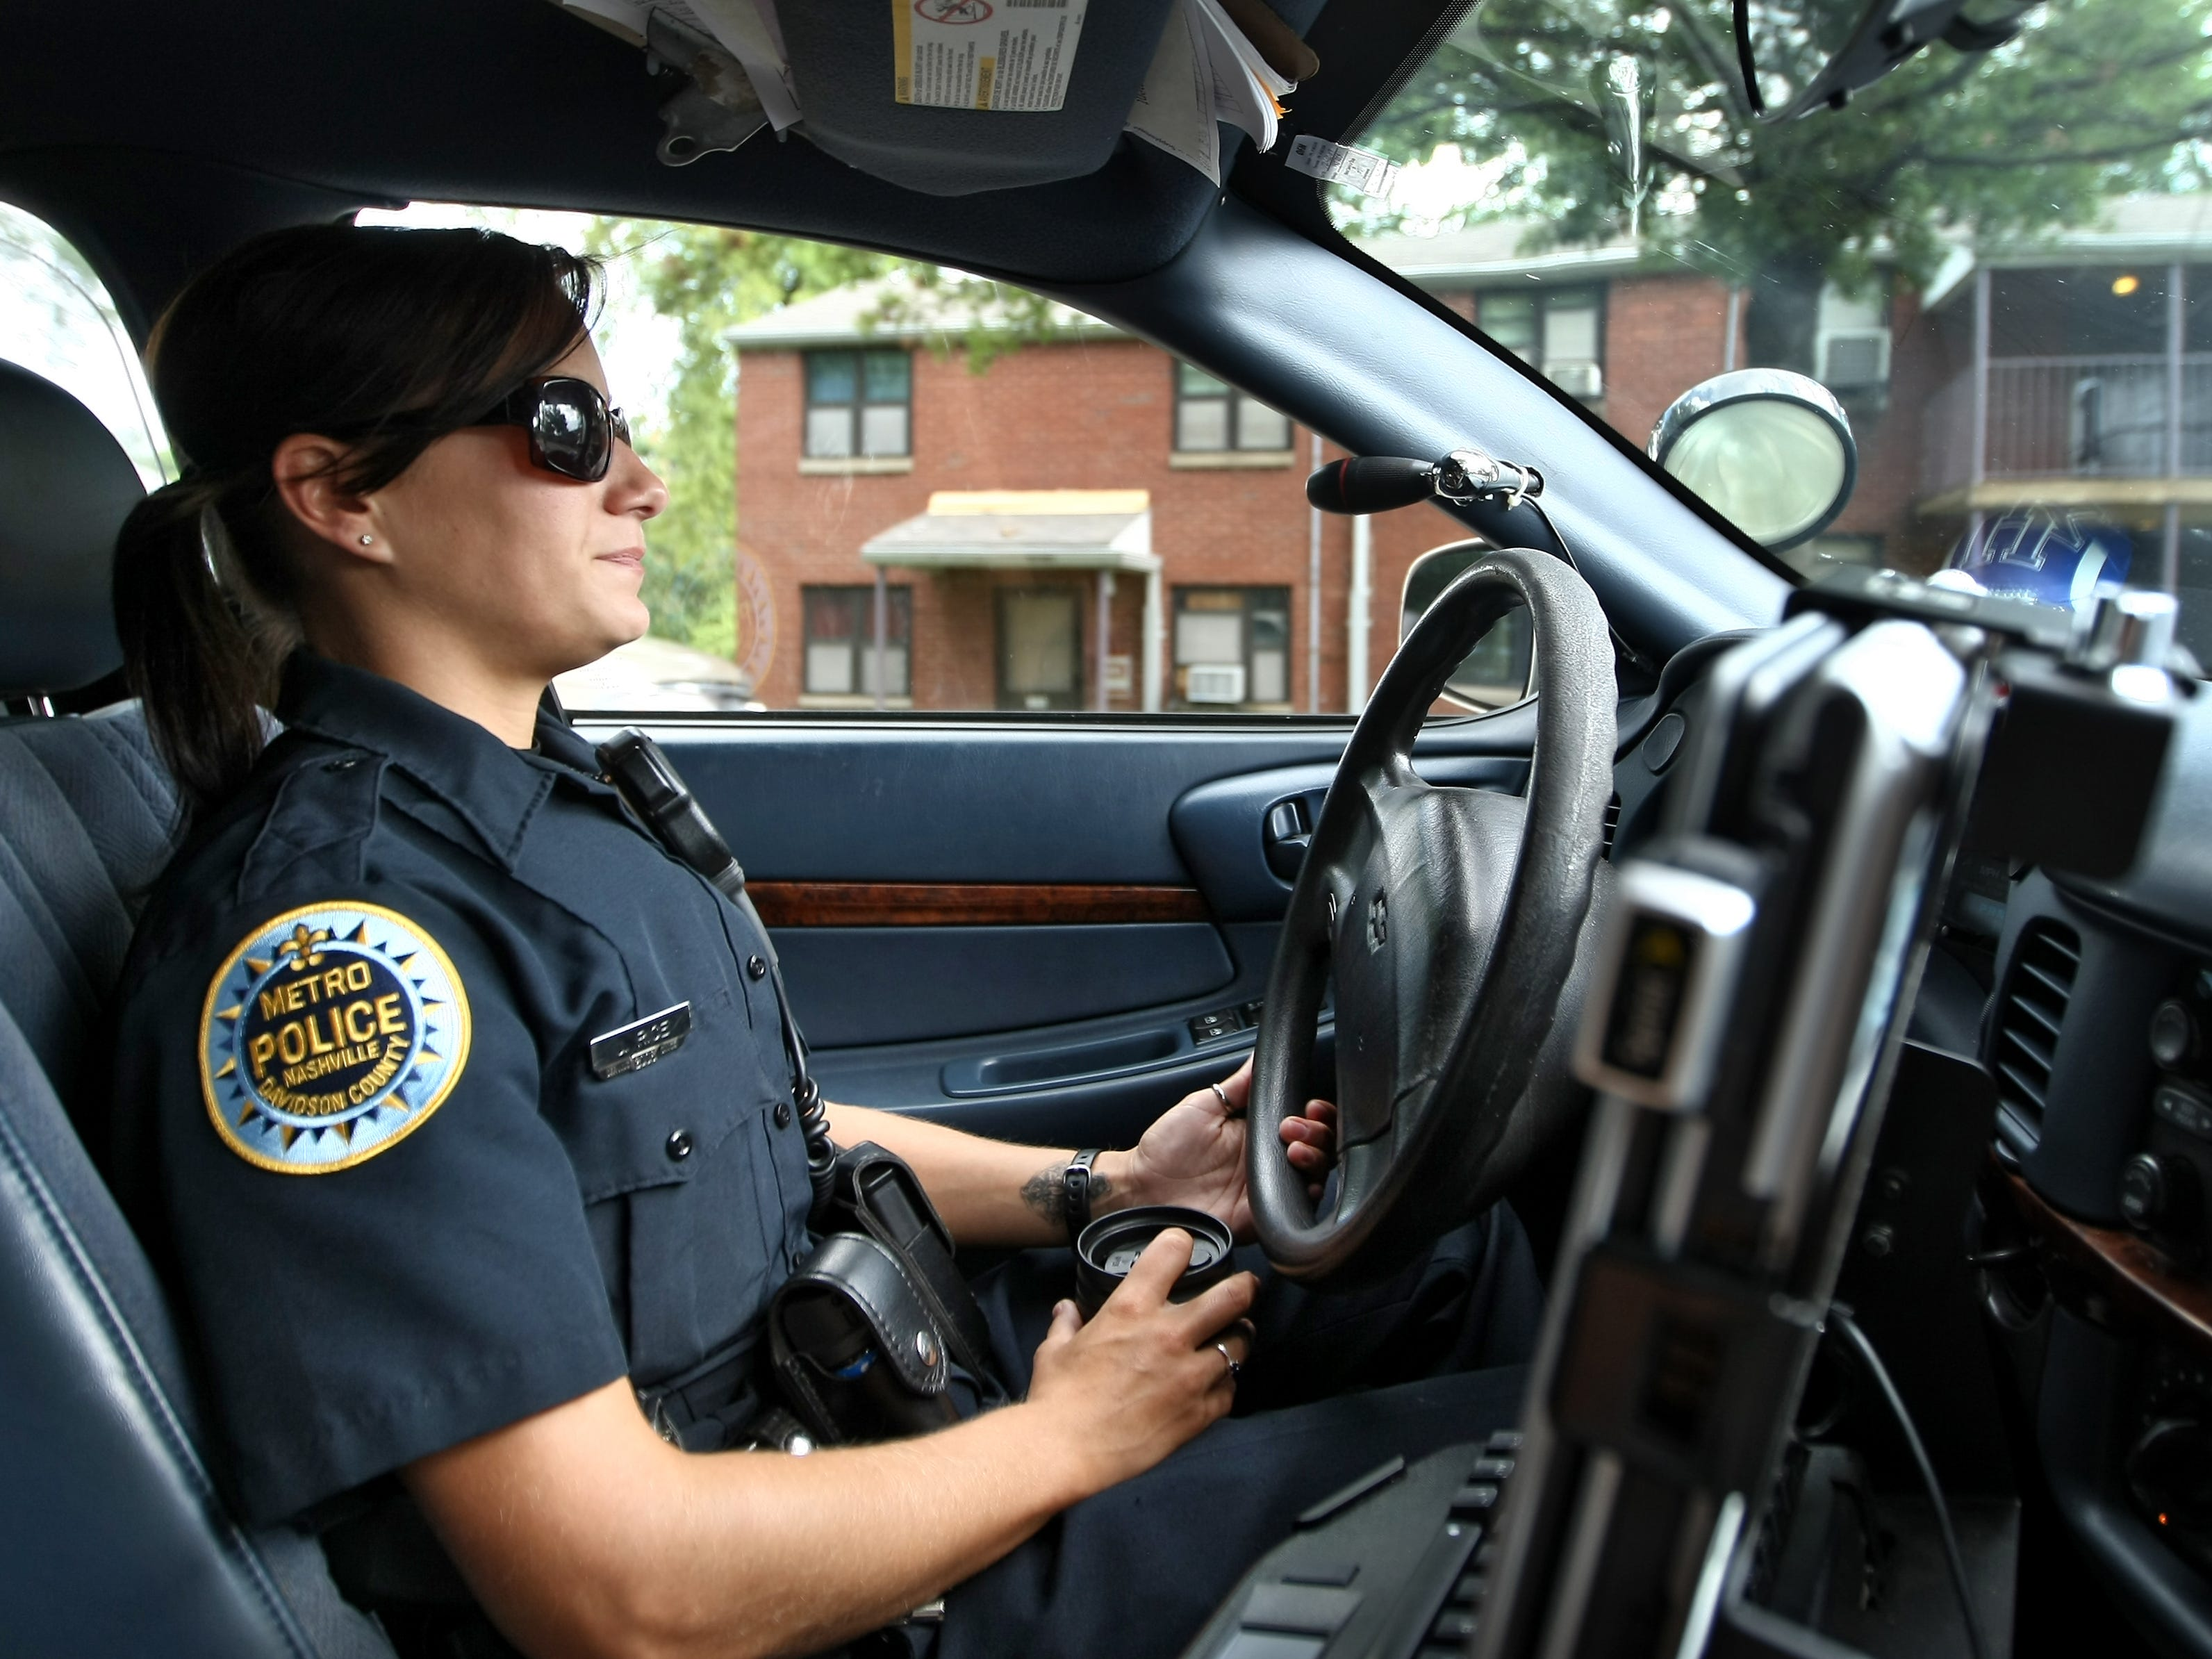 Jaime Rice of Metro police patrols the James A. Cayce Homes on July 29, 2009.